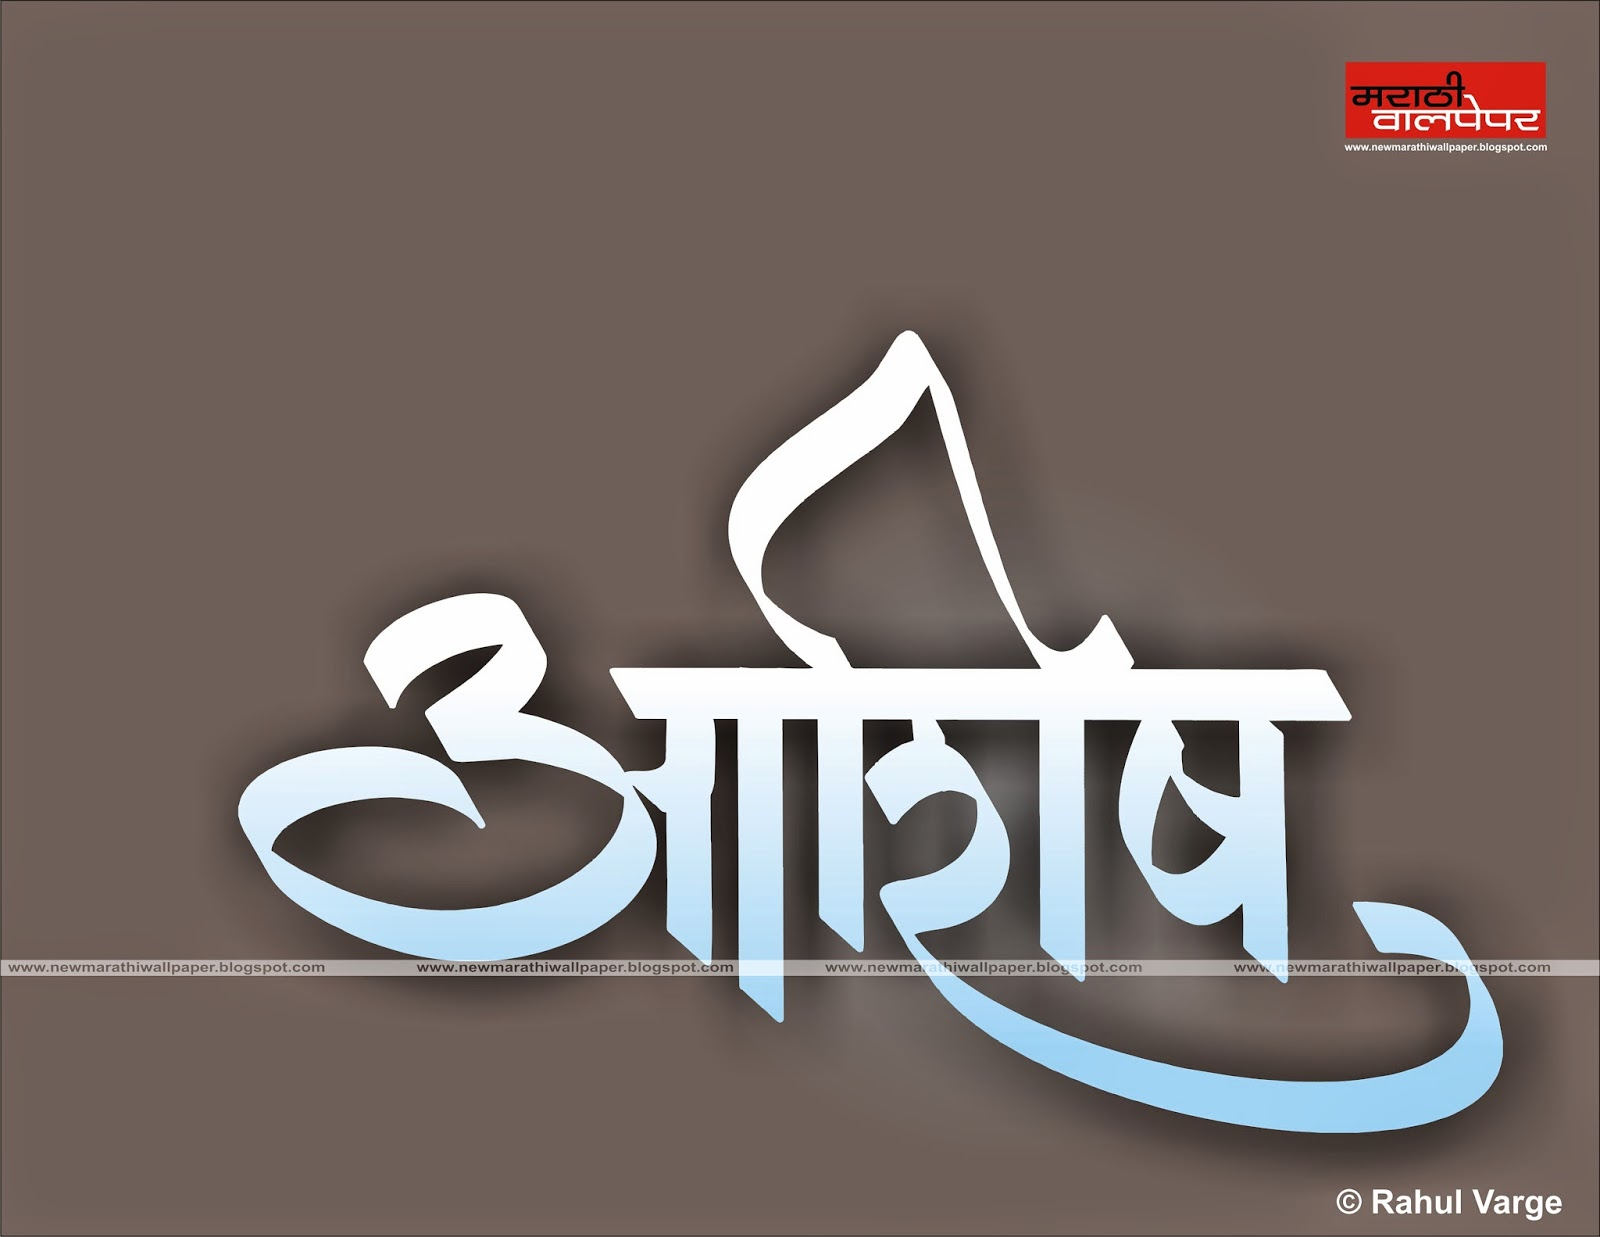 marathi how r u pics images wallpaper for facebook page 1 holidays oo